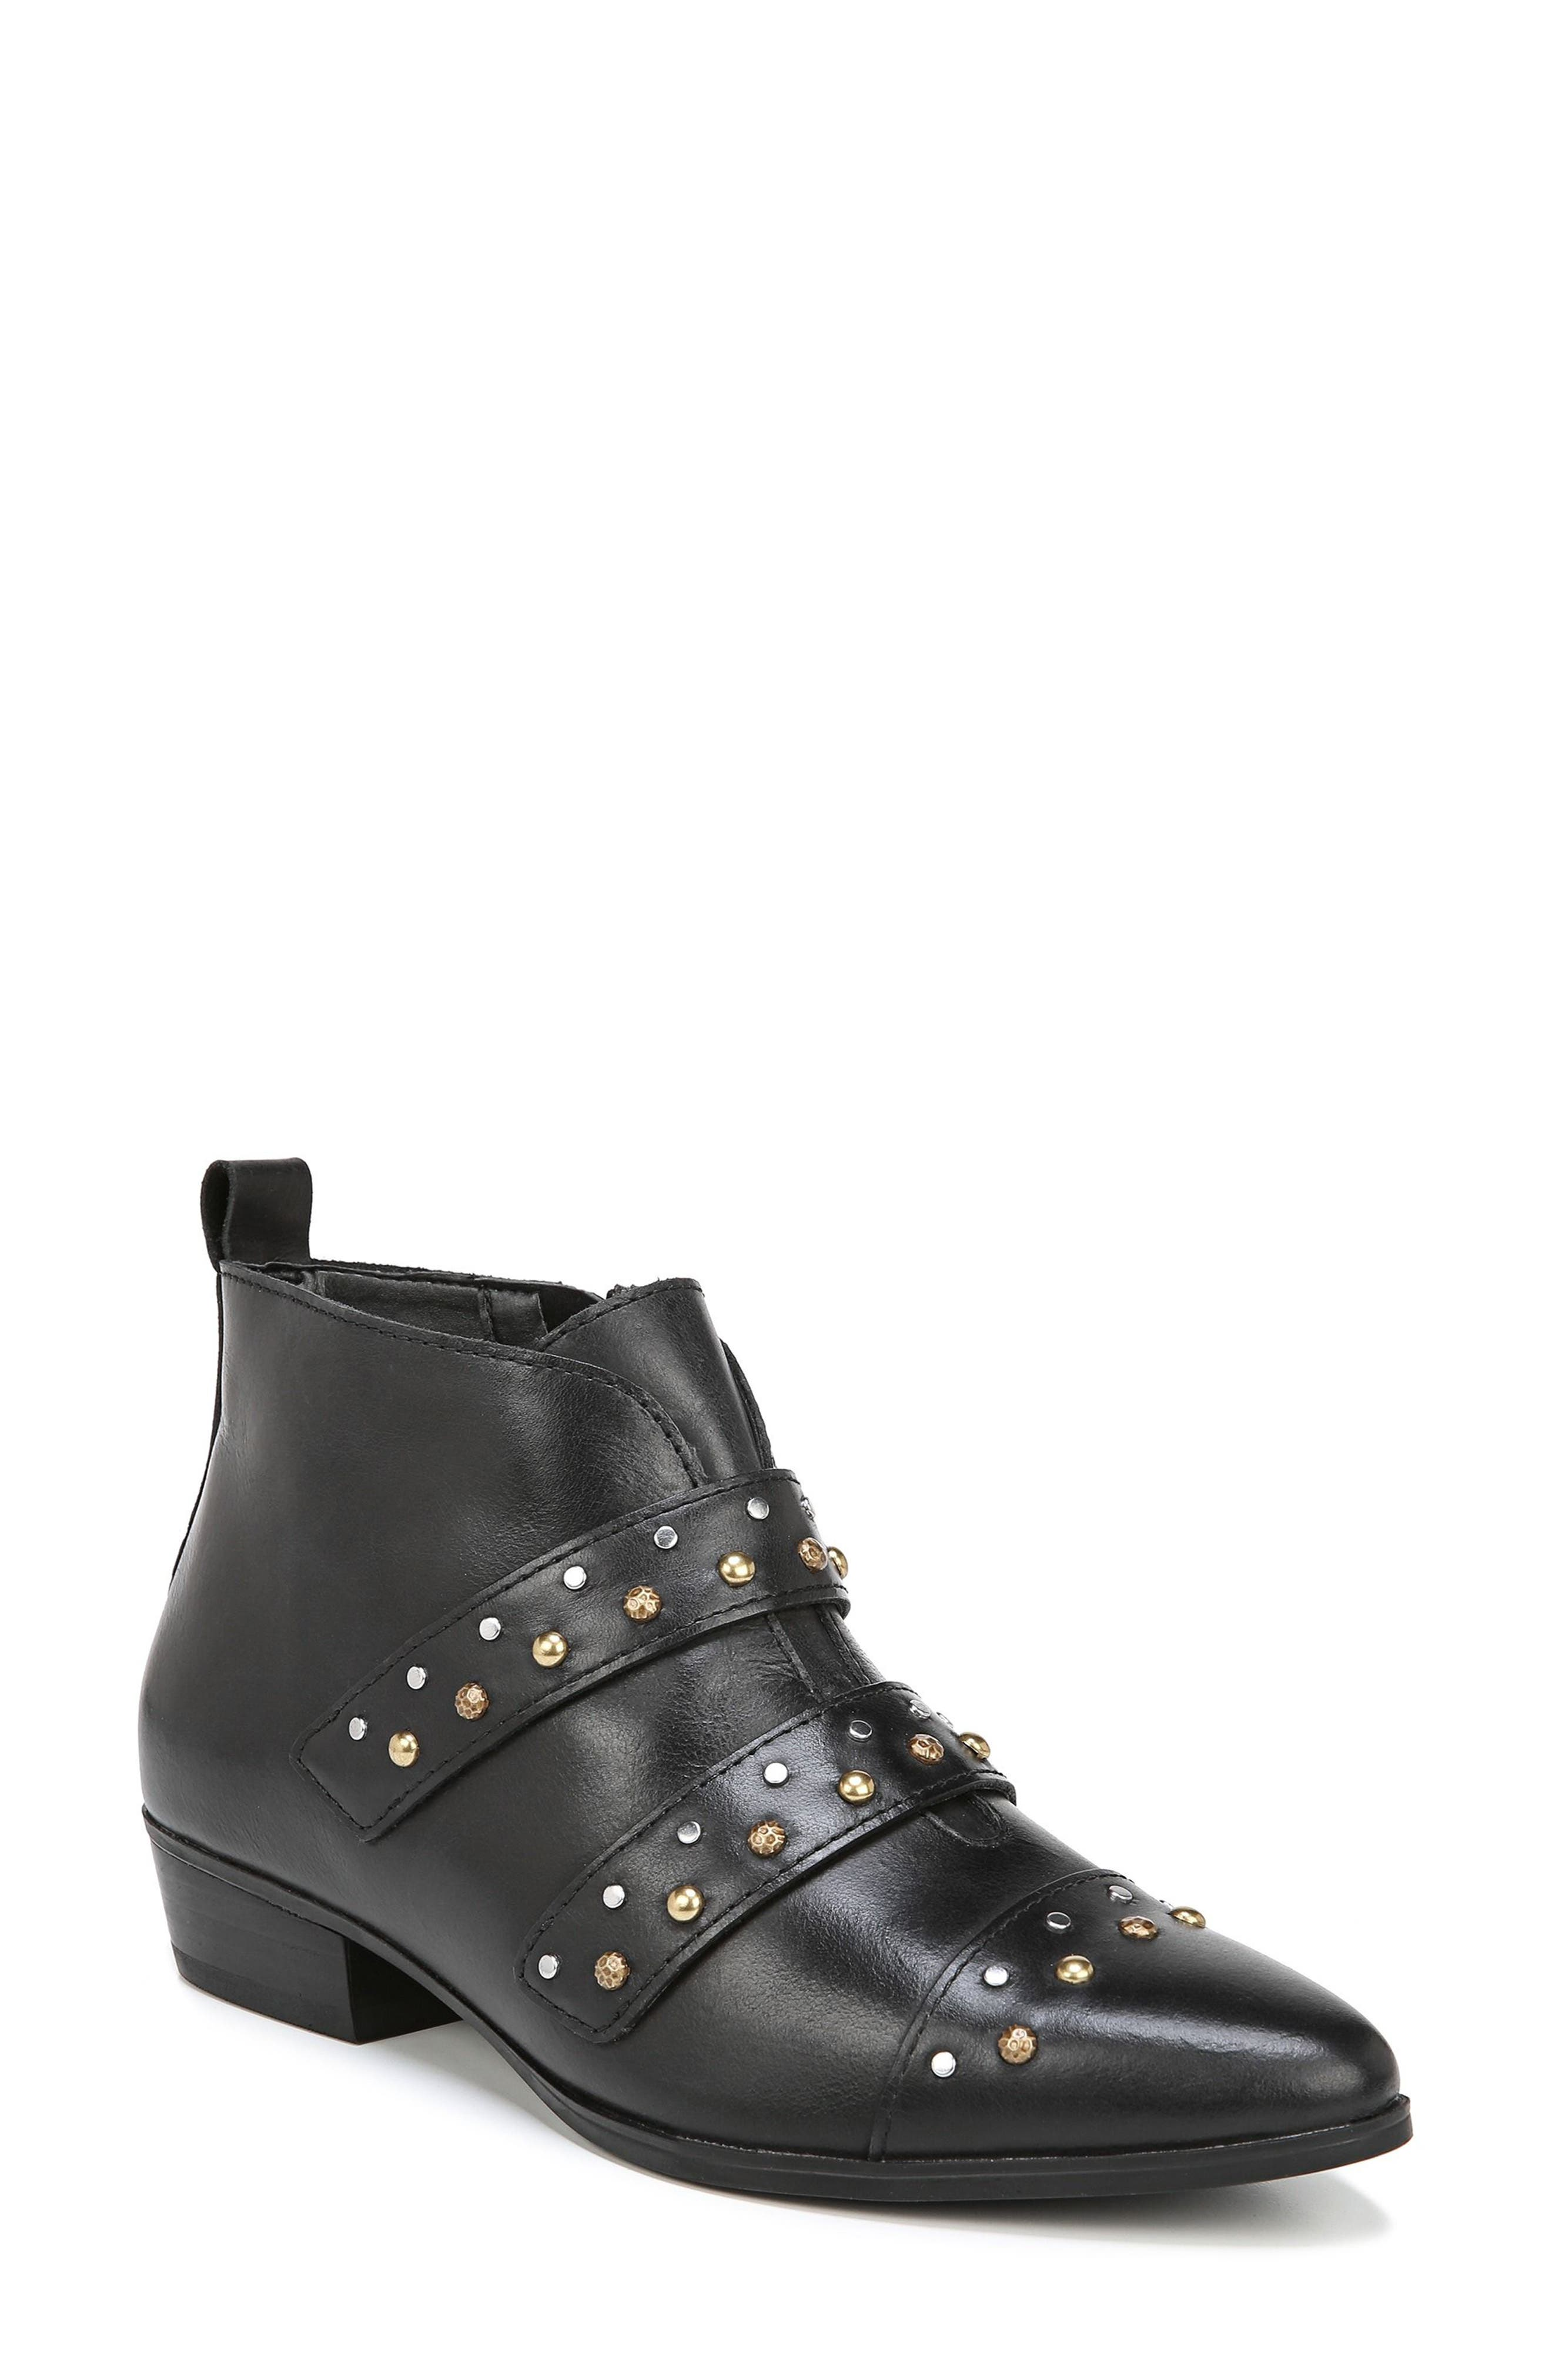 Naturalizer Blissful Studded Bootie, Black